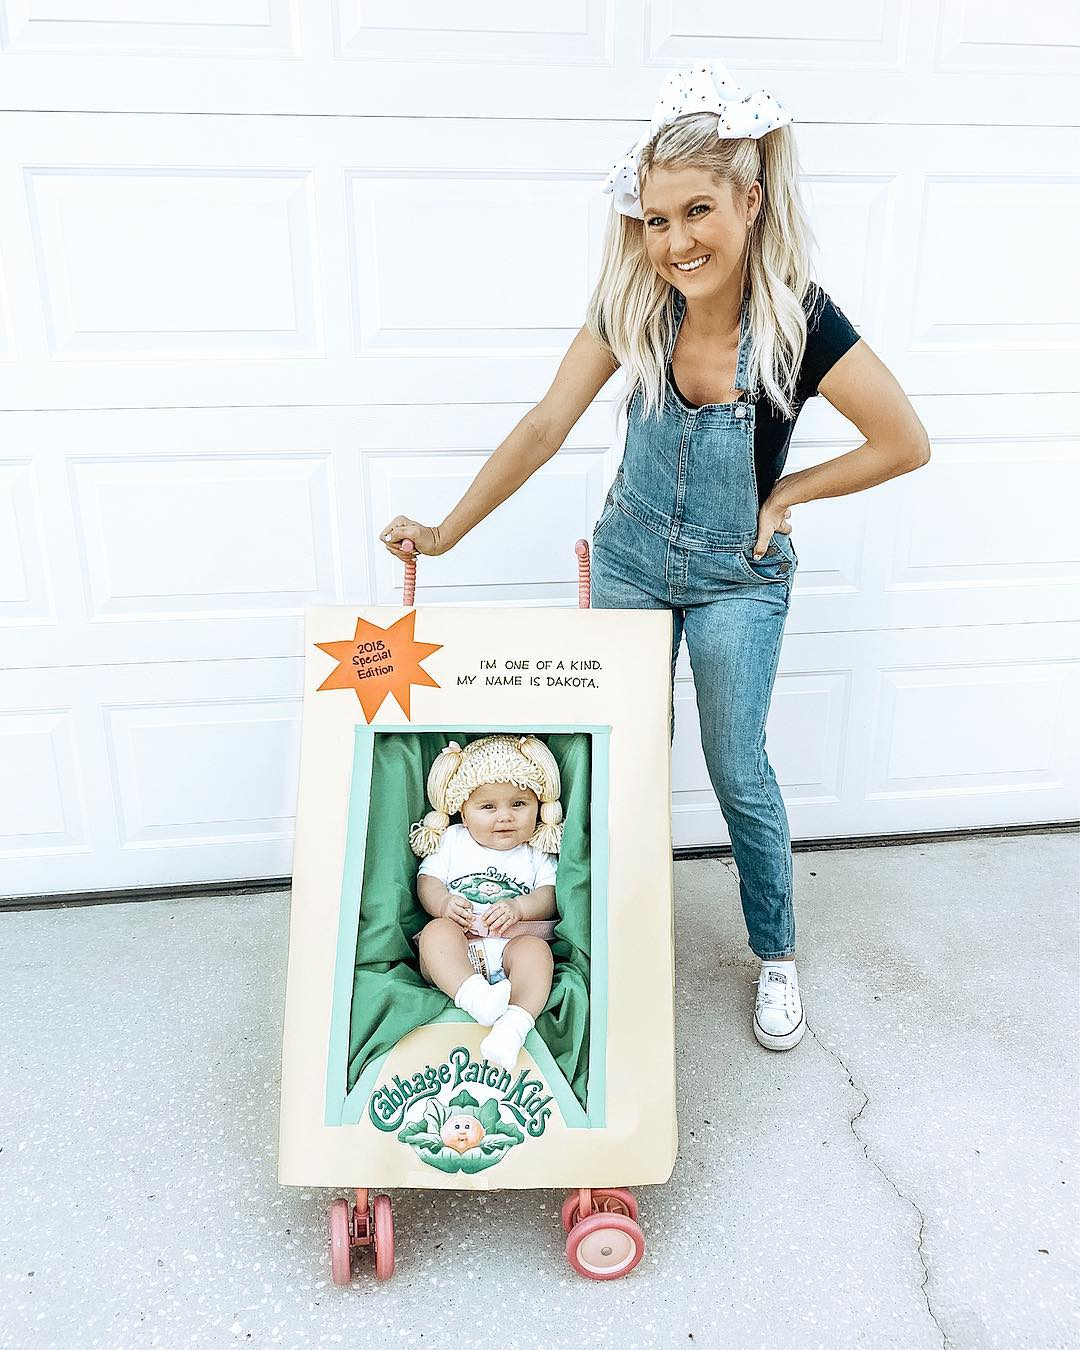 Cabbage Patch Doll Halloween Costume - Check out these 40 cute and creative Halloween costume ideas for women, couples, families, and friends! #halloween #halloweencostumes #halloweencostumeideas